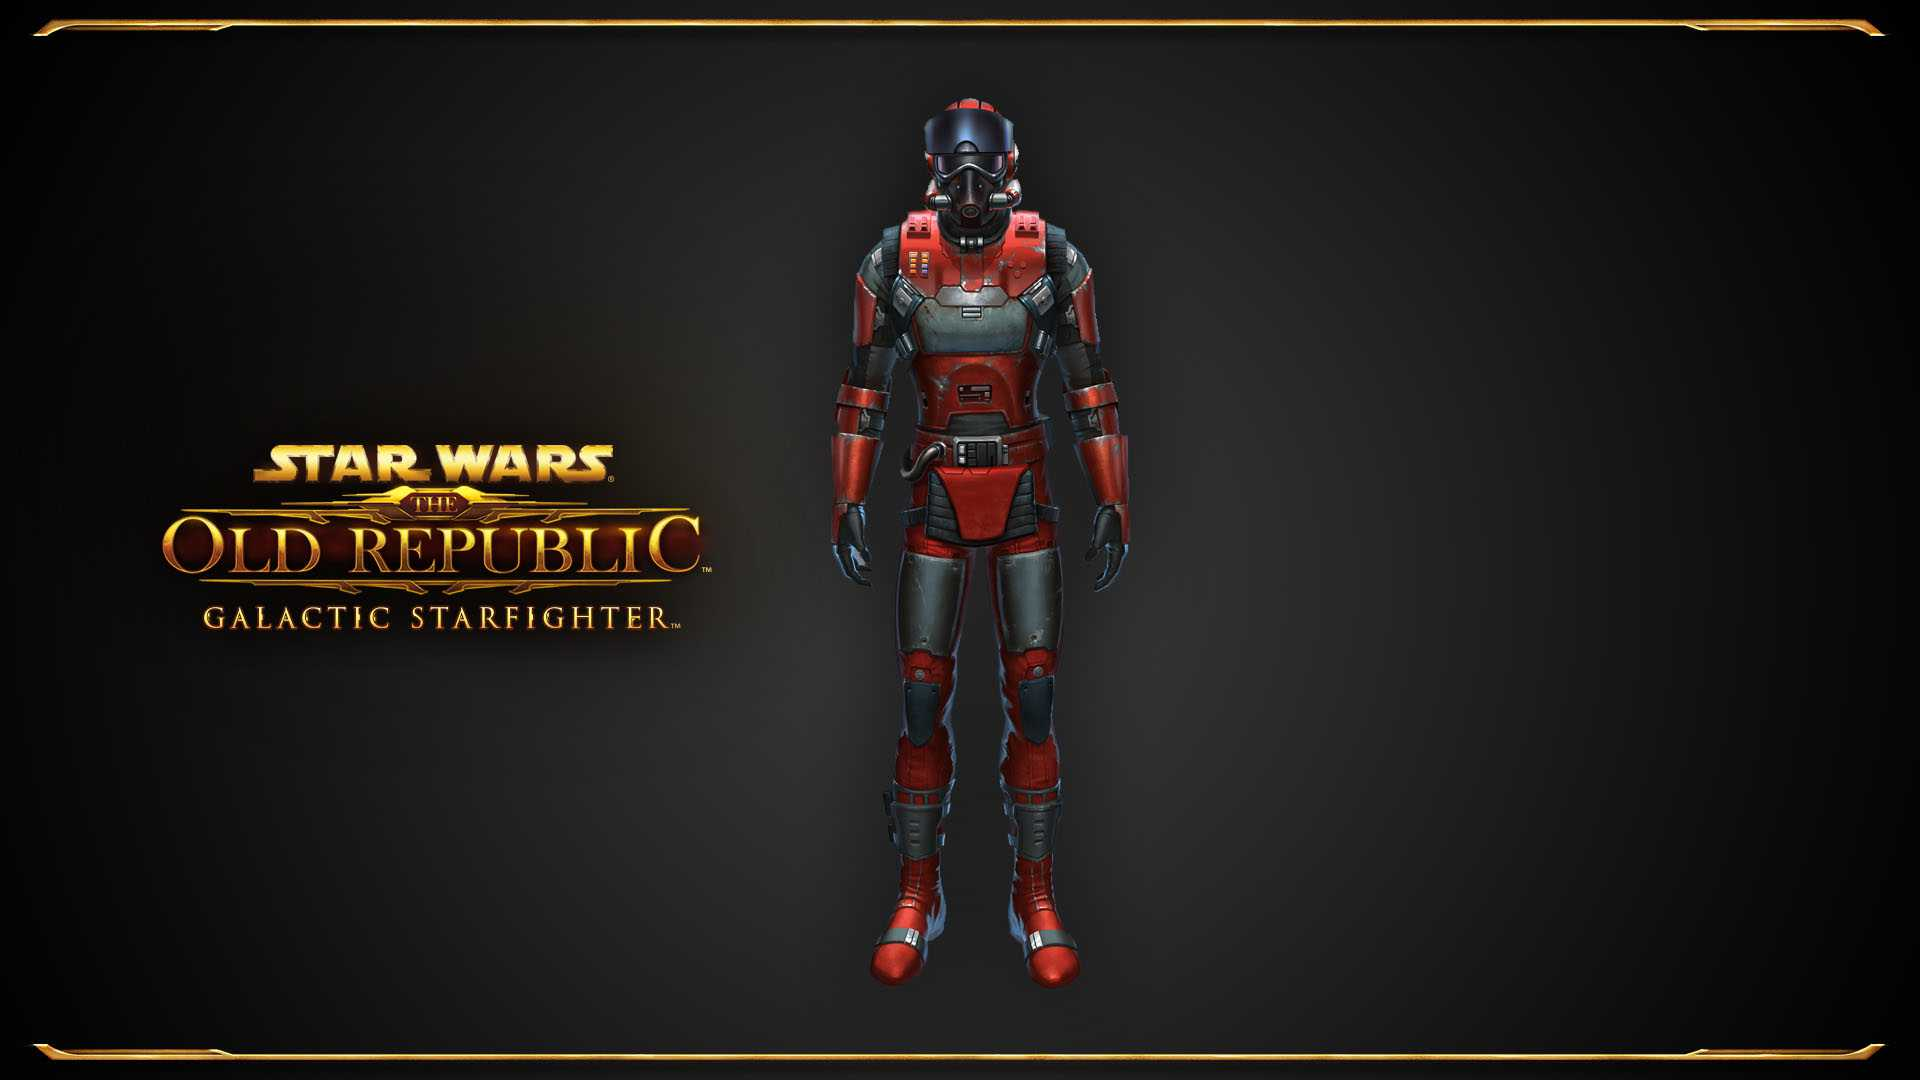 Star Wars: The Old Republic Adding Space Sim Gameplay With Galactic Starfighter Expansion